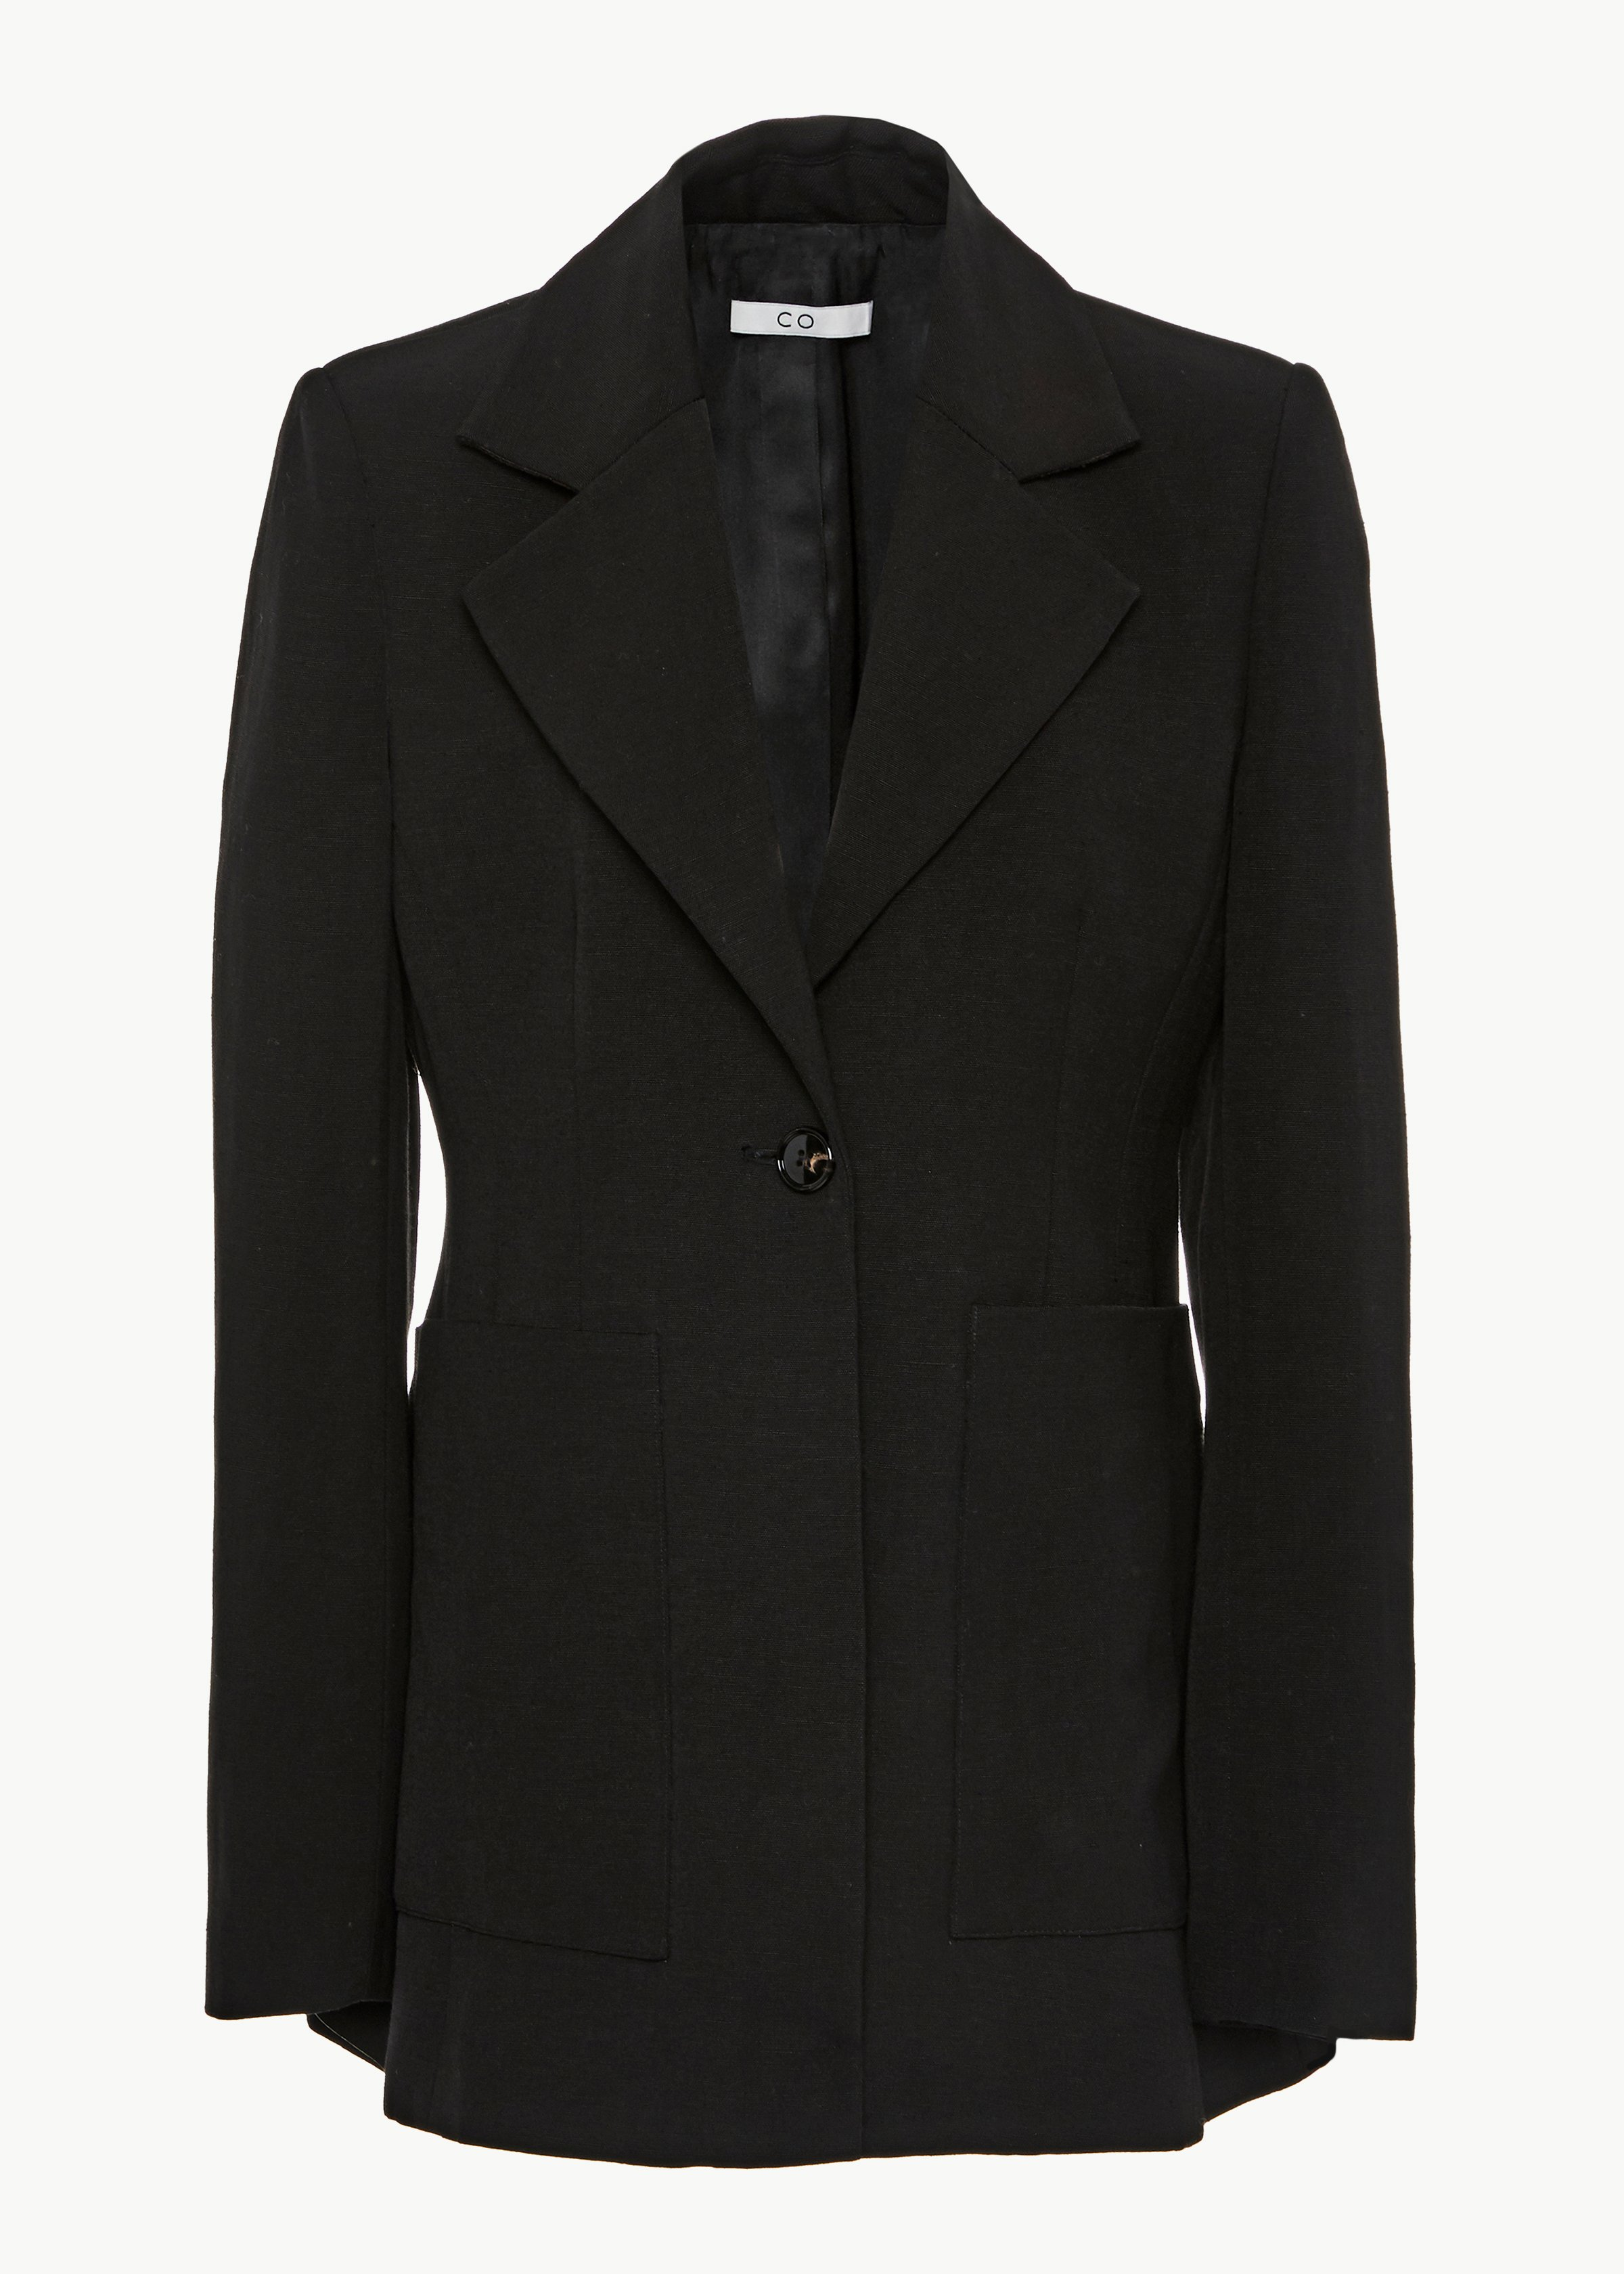 Single Breasted Blazer in Viscose Linen - Black - CO